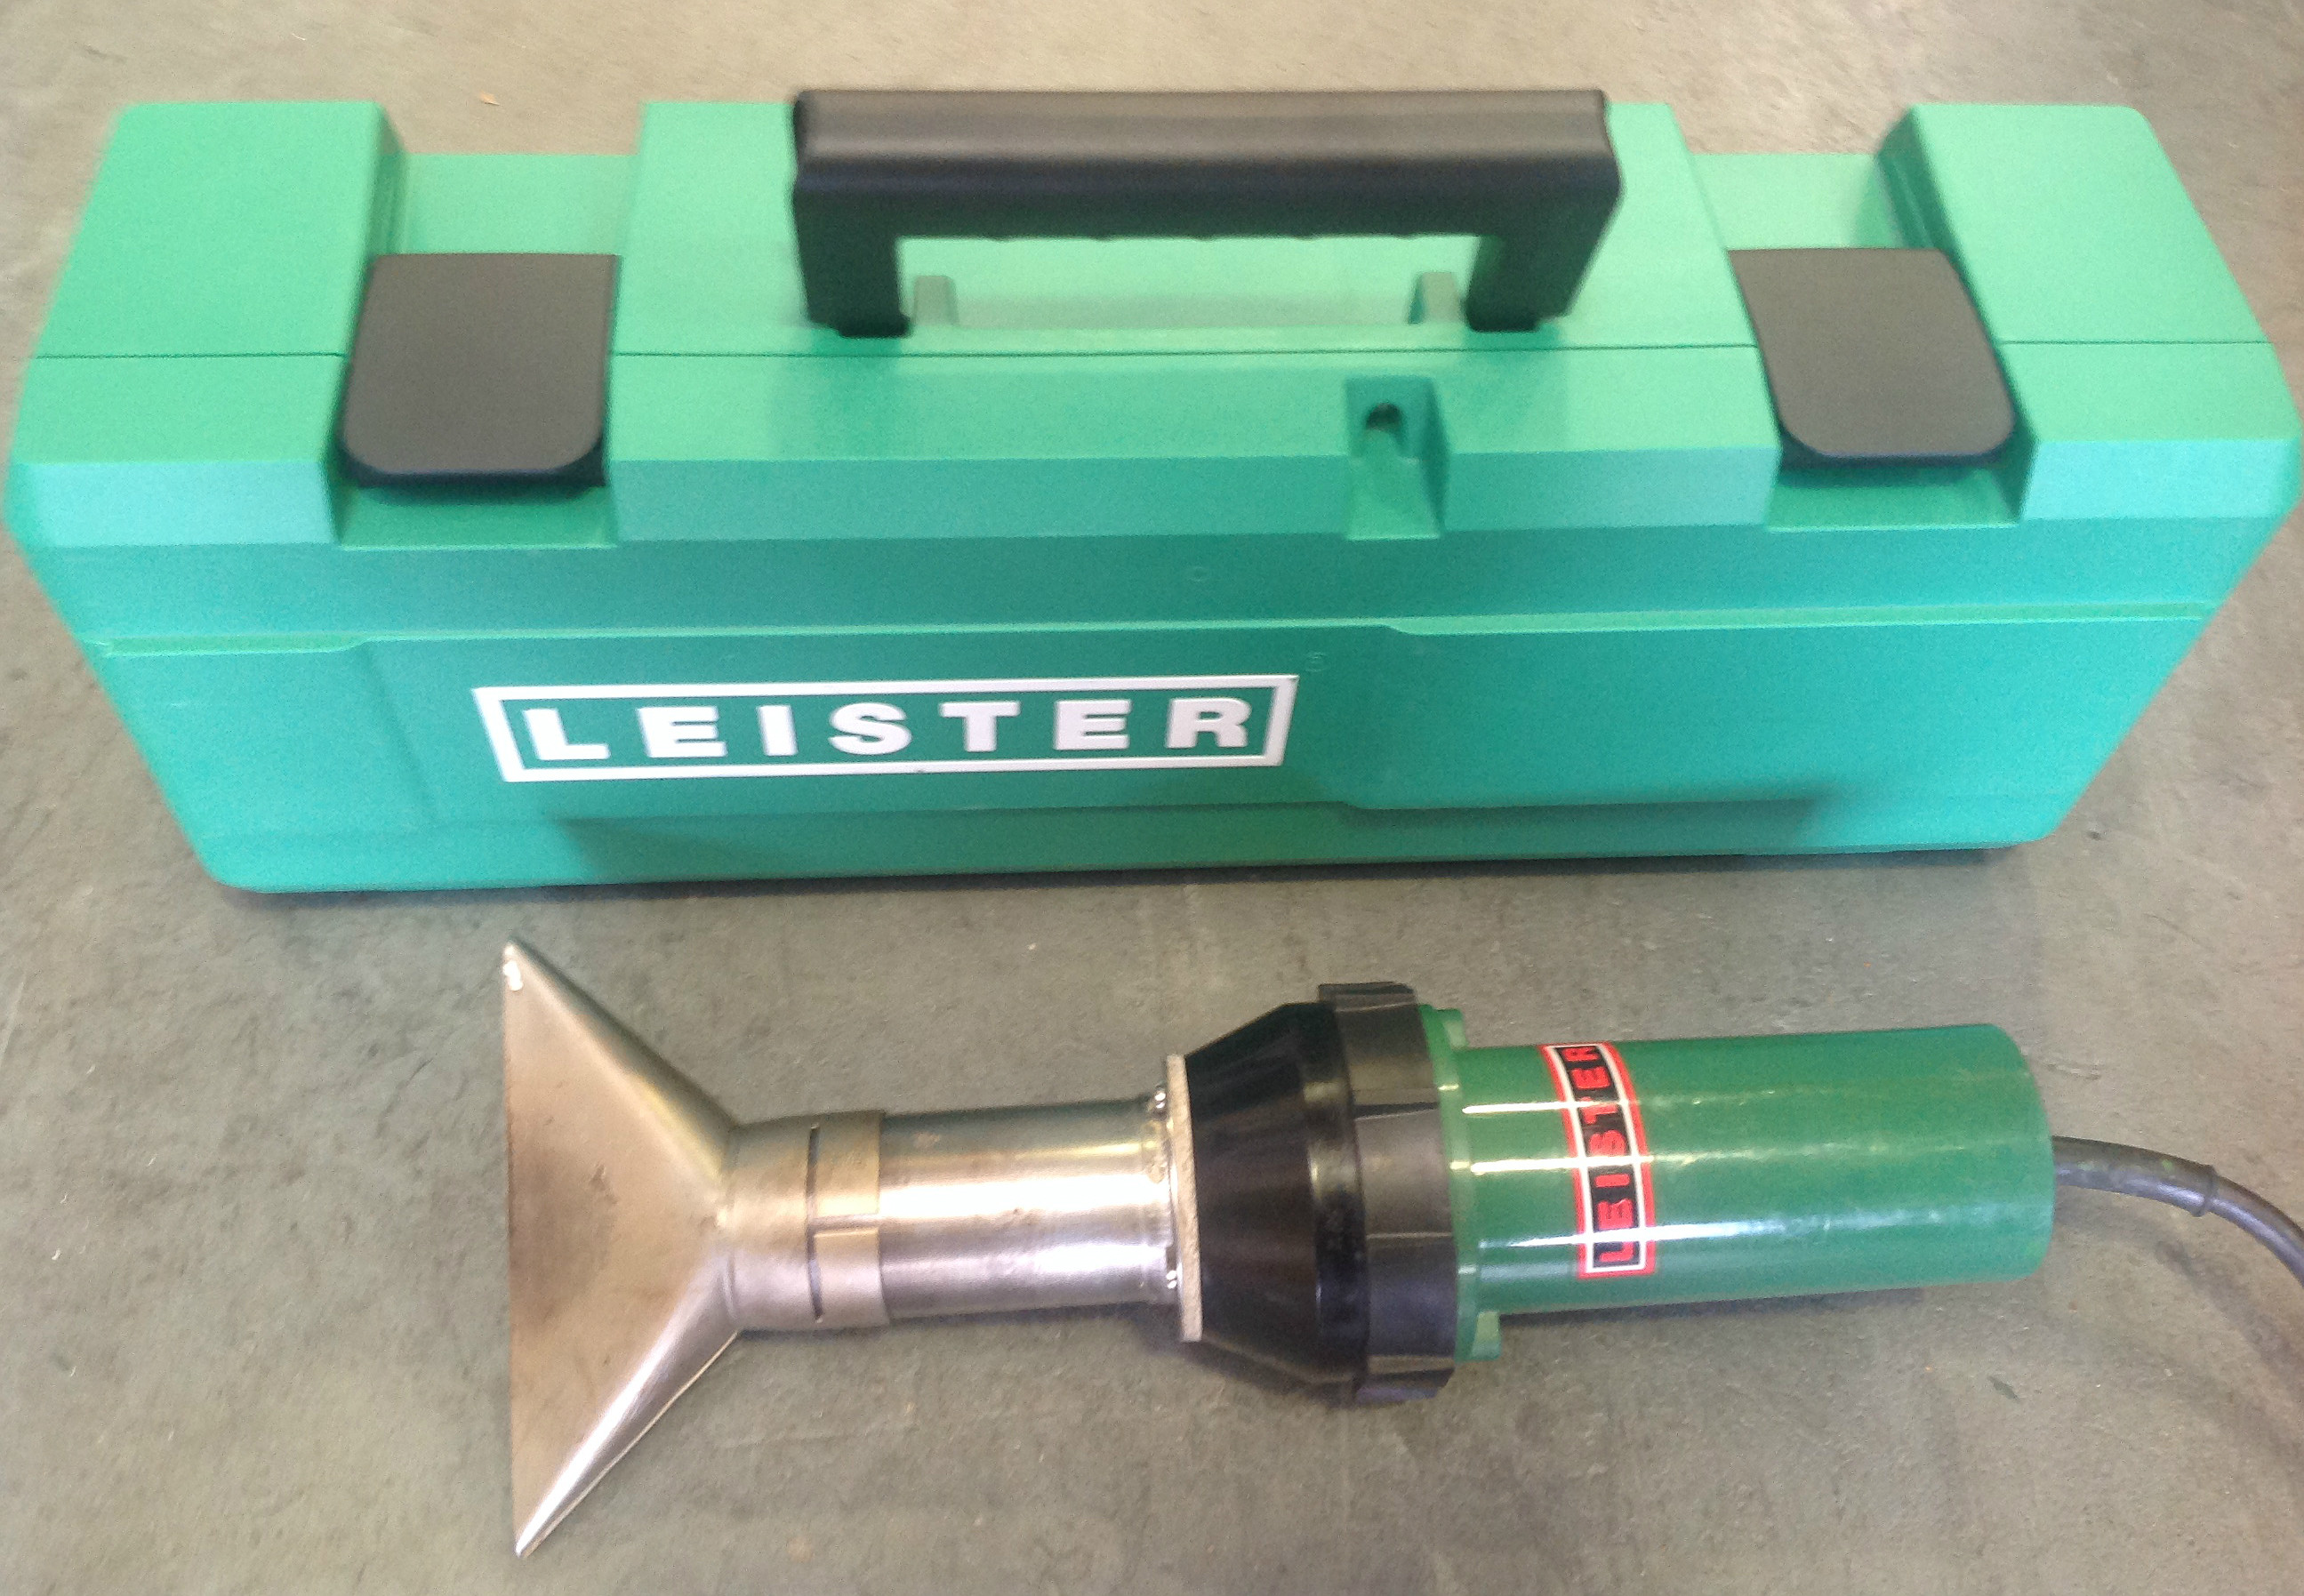 Leister Electron Hot Air Roofing Welder Heat Gun with Unique Nozzle and Brand New Case   - 240V (USED155)